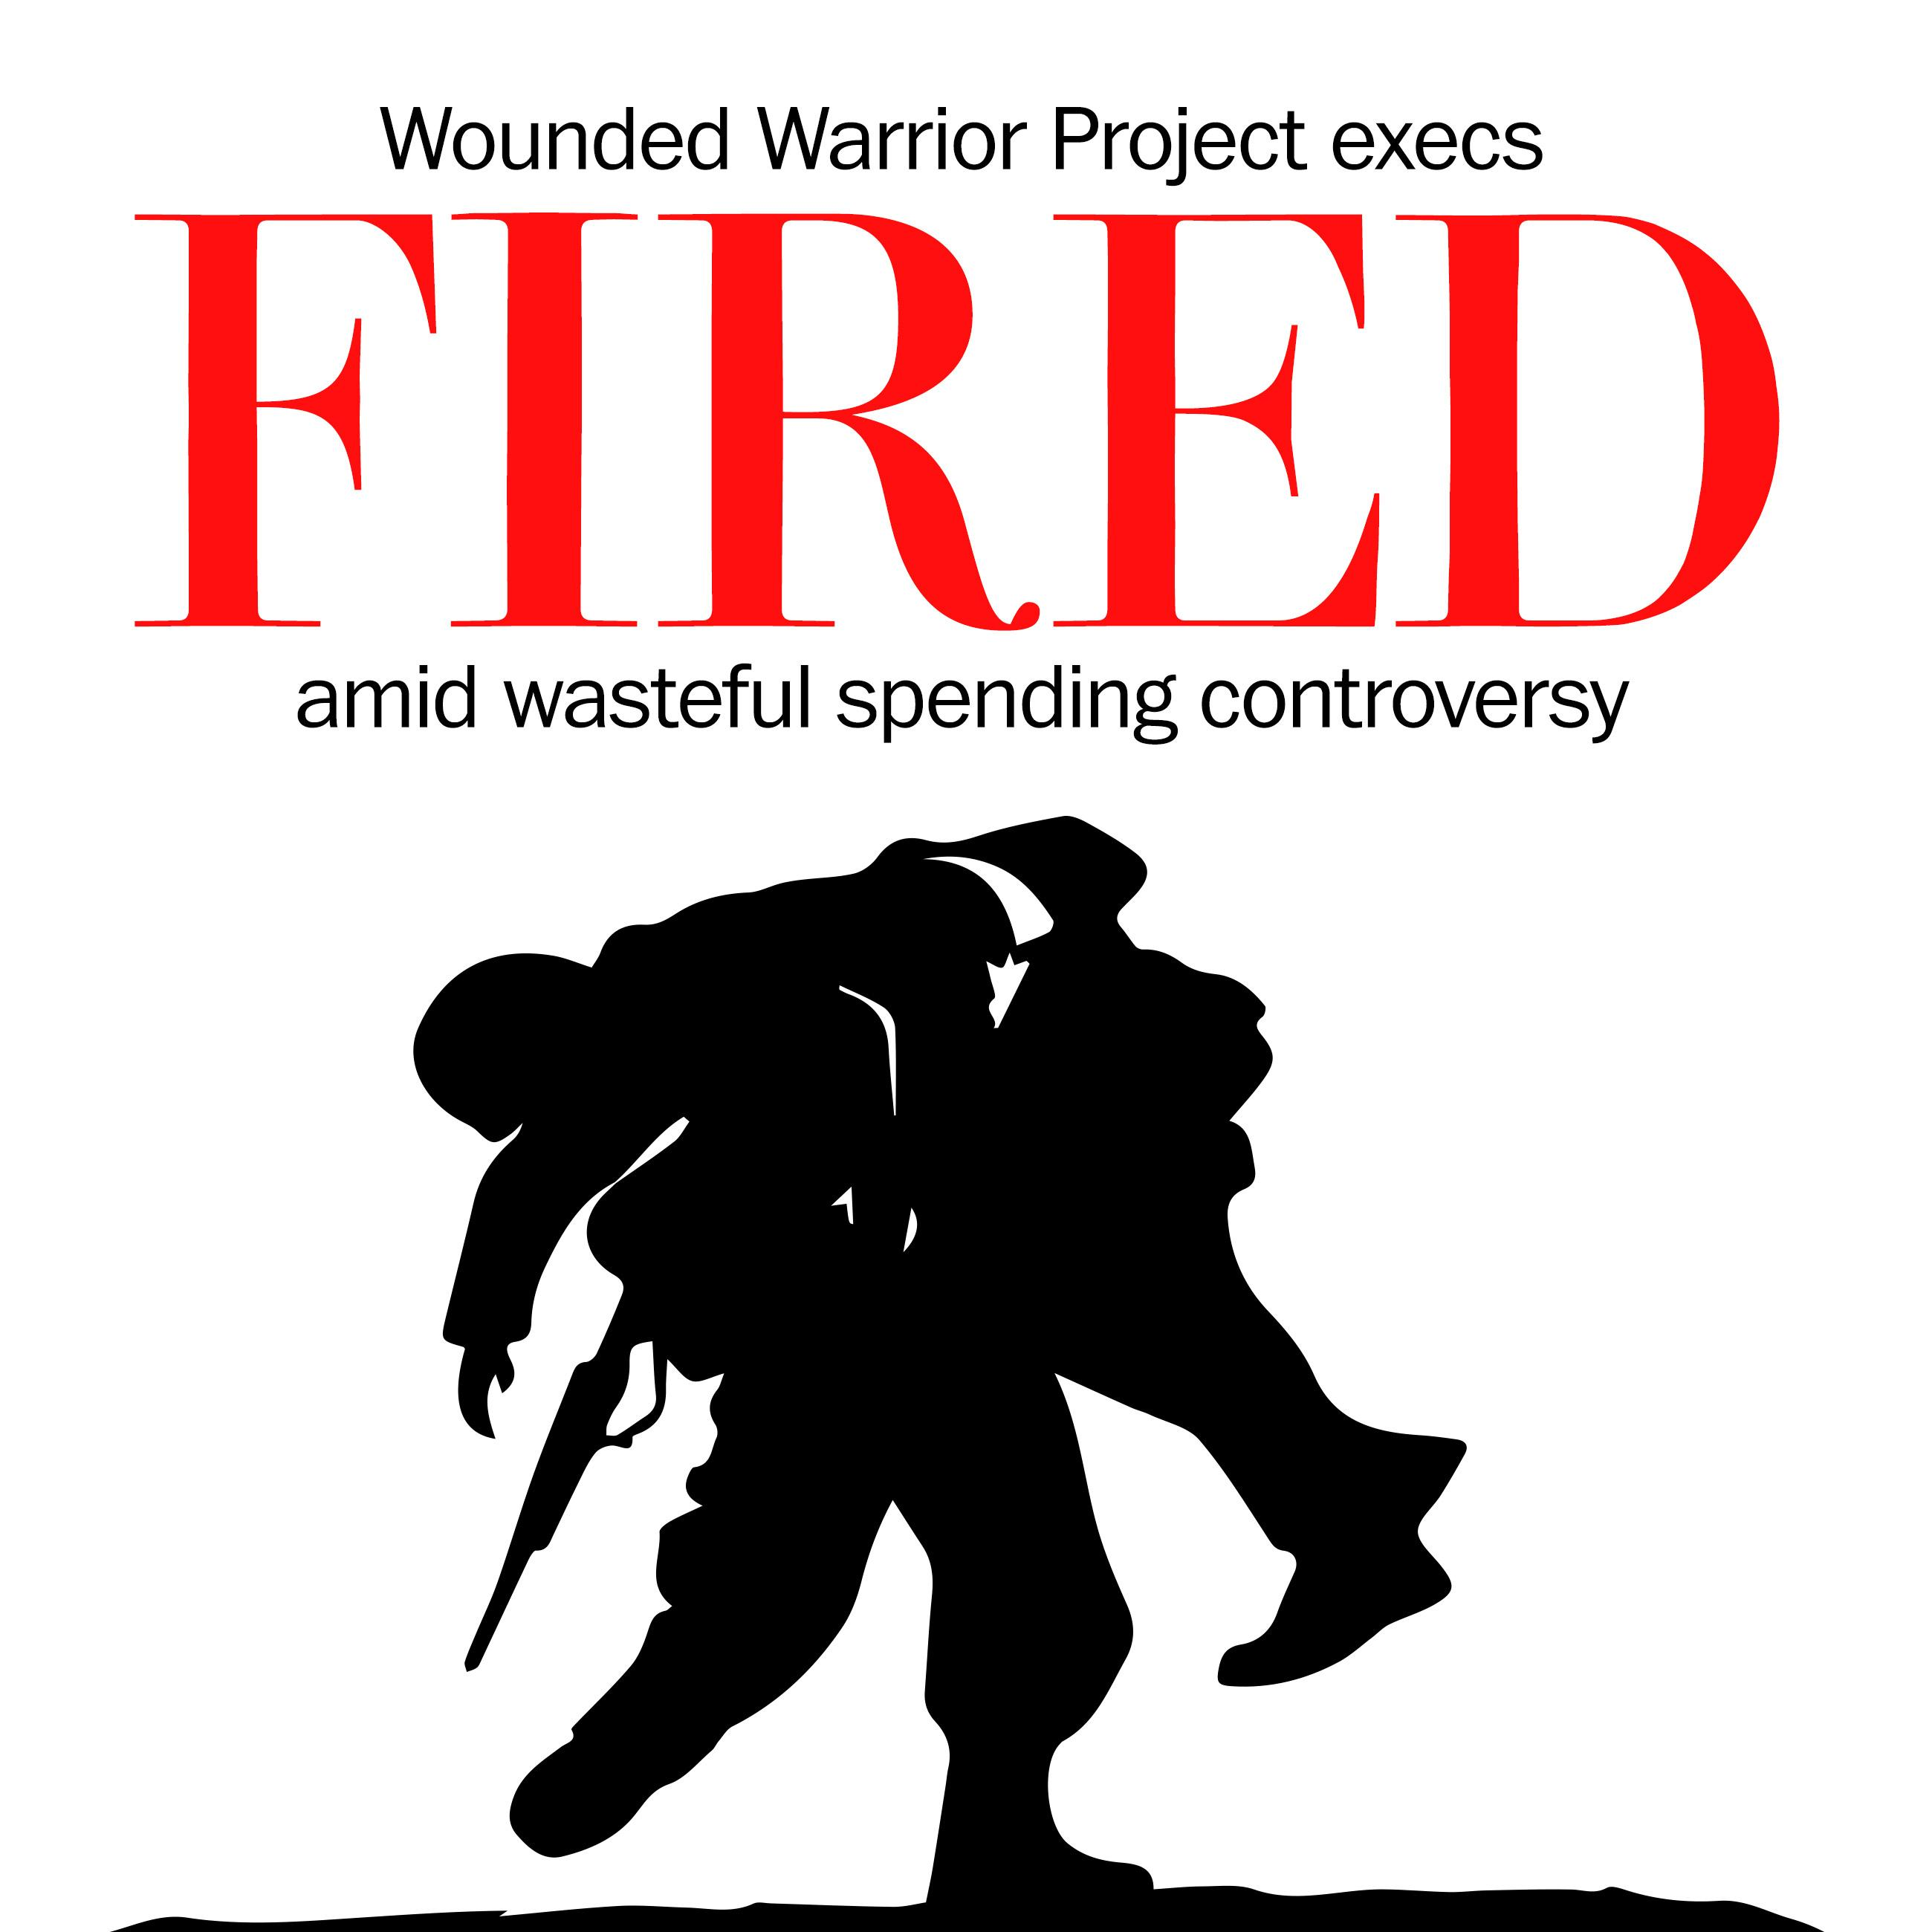 Report: Wounded Warrior Project executives fired amid controversy